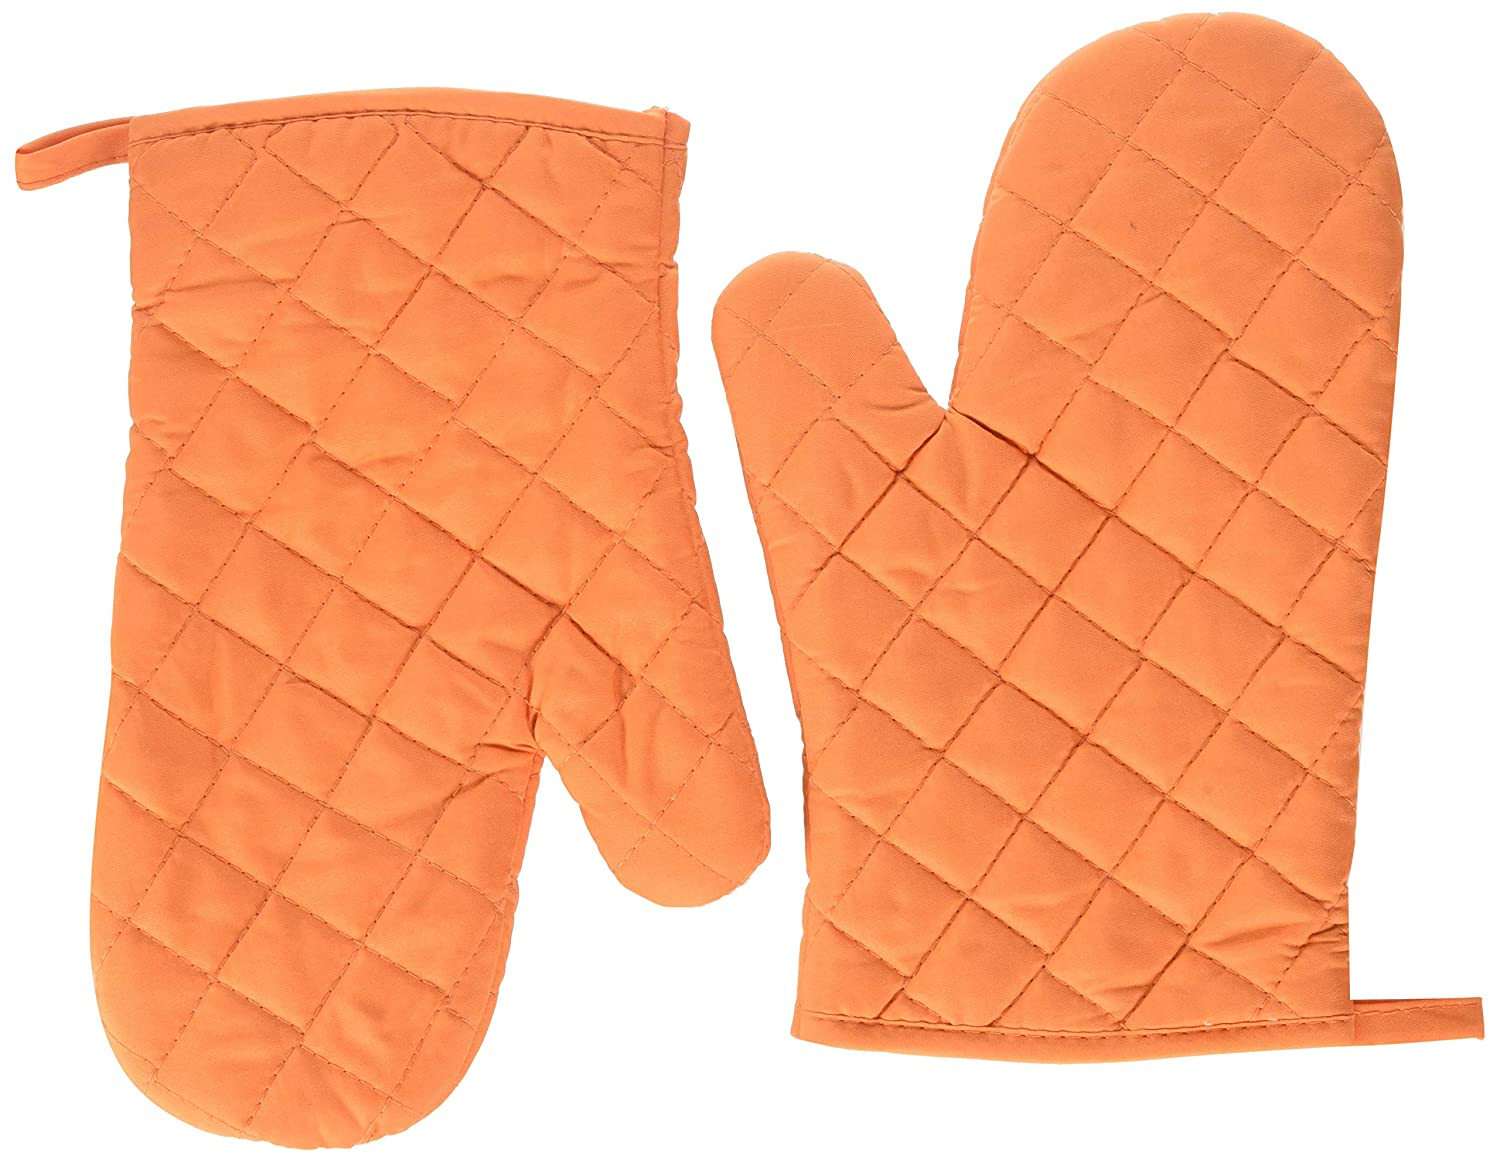 Oven Mitts, Premium Heat Resistant Kitchen Gloves Cotton & Polyester Quilted Oversized Mittens, 1 Pair Orange